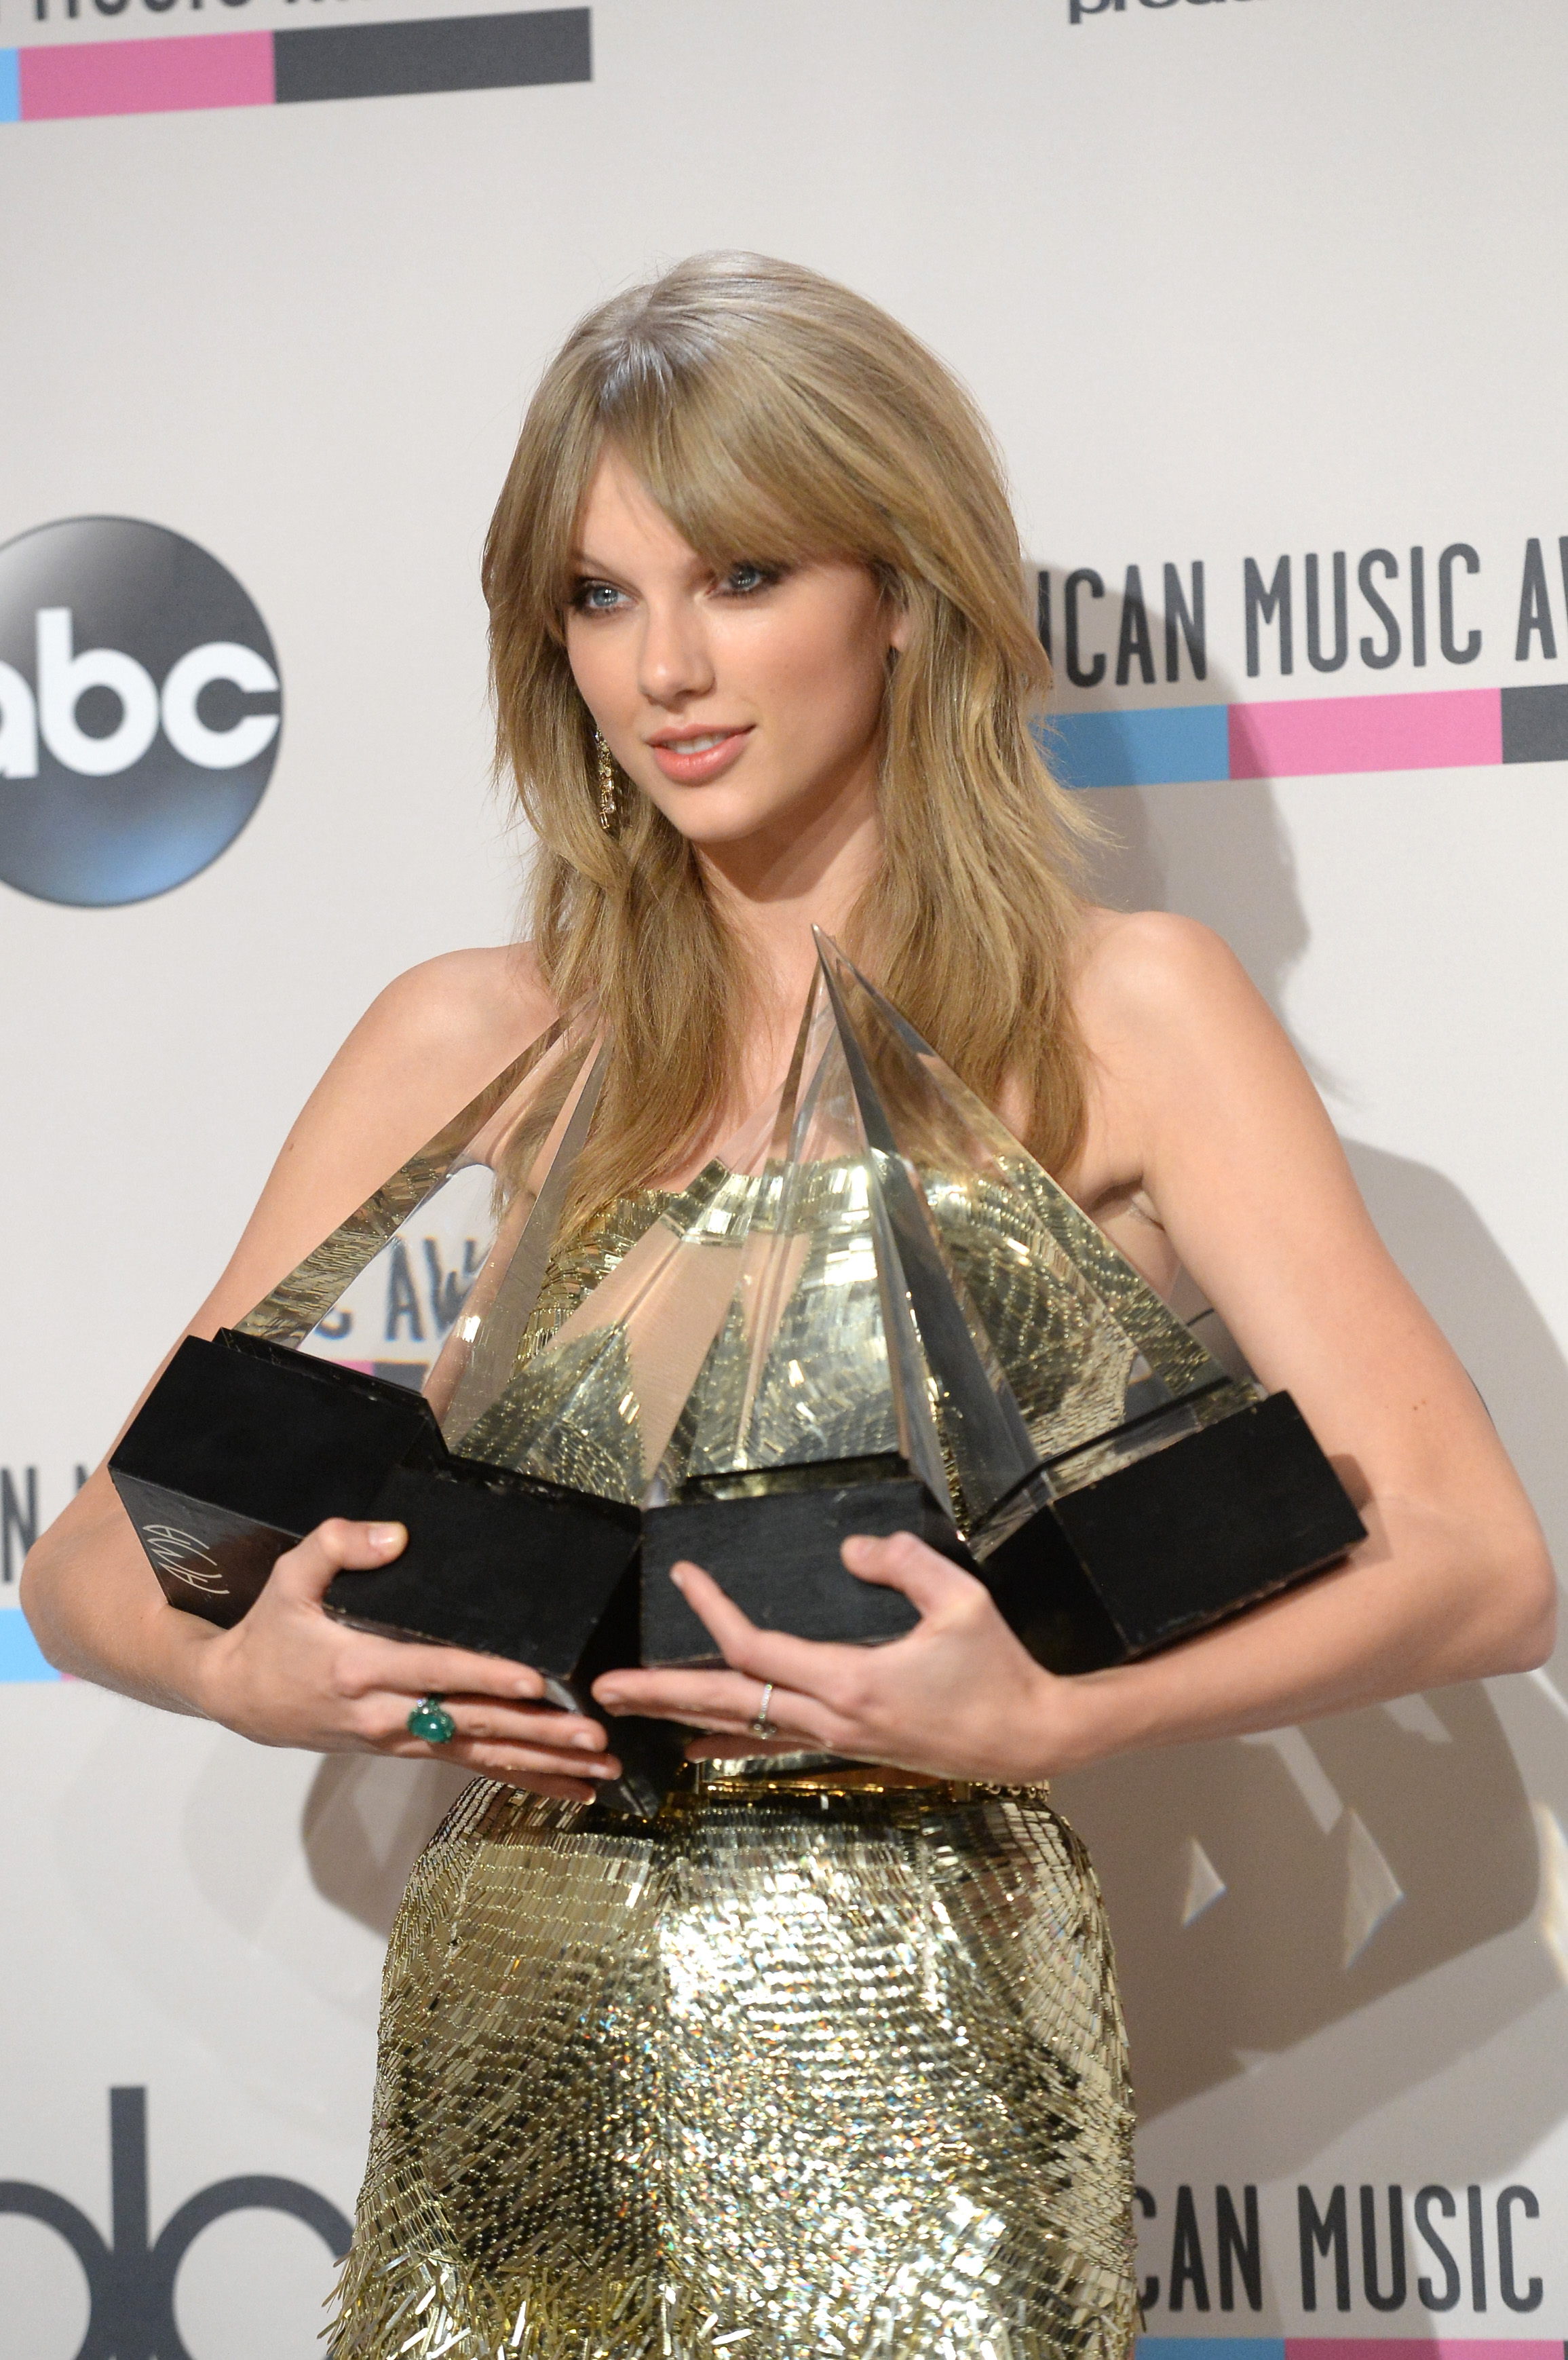 http://taylorpictures.net/albums/app/2013/americanmusicawards/101.jpg